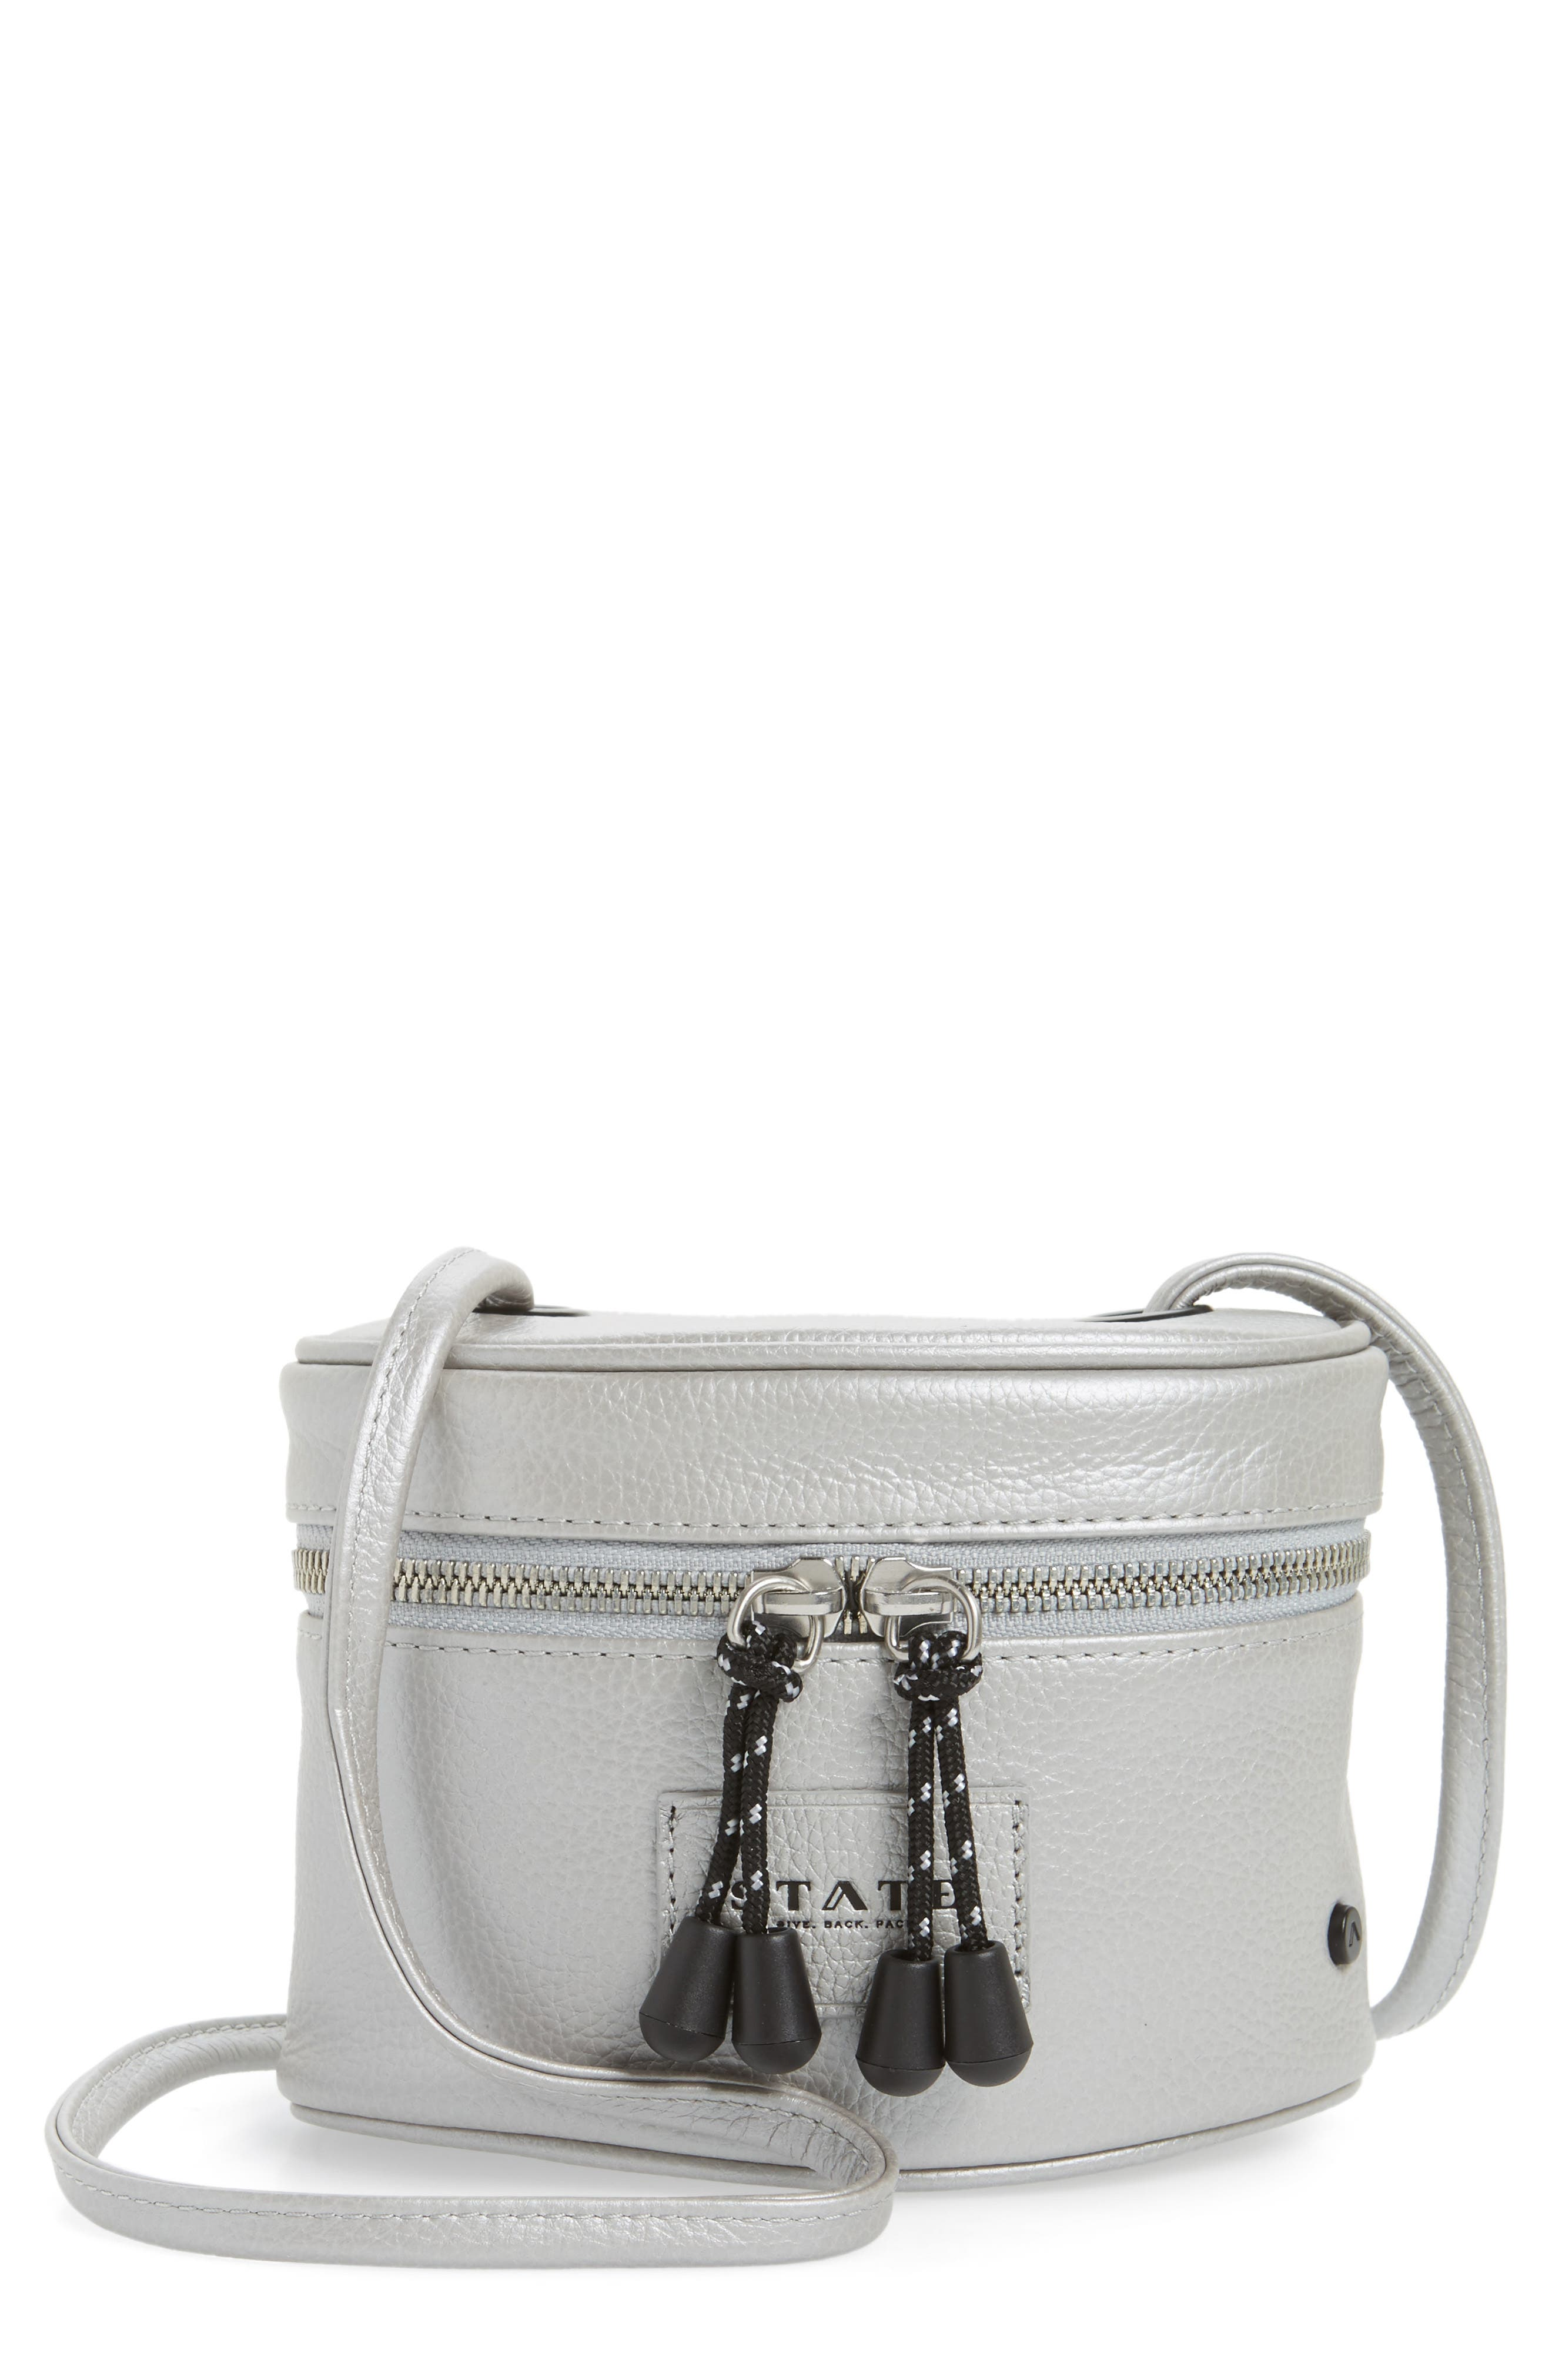 Greenwood Autumn Leather Crossbody Bag,                             Main thumbnail 1, color,                             Silver